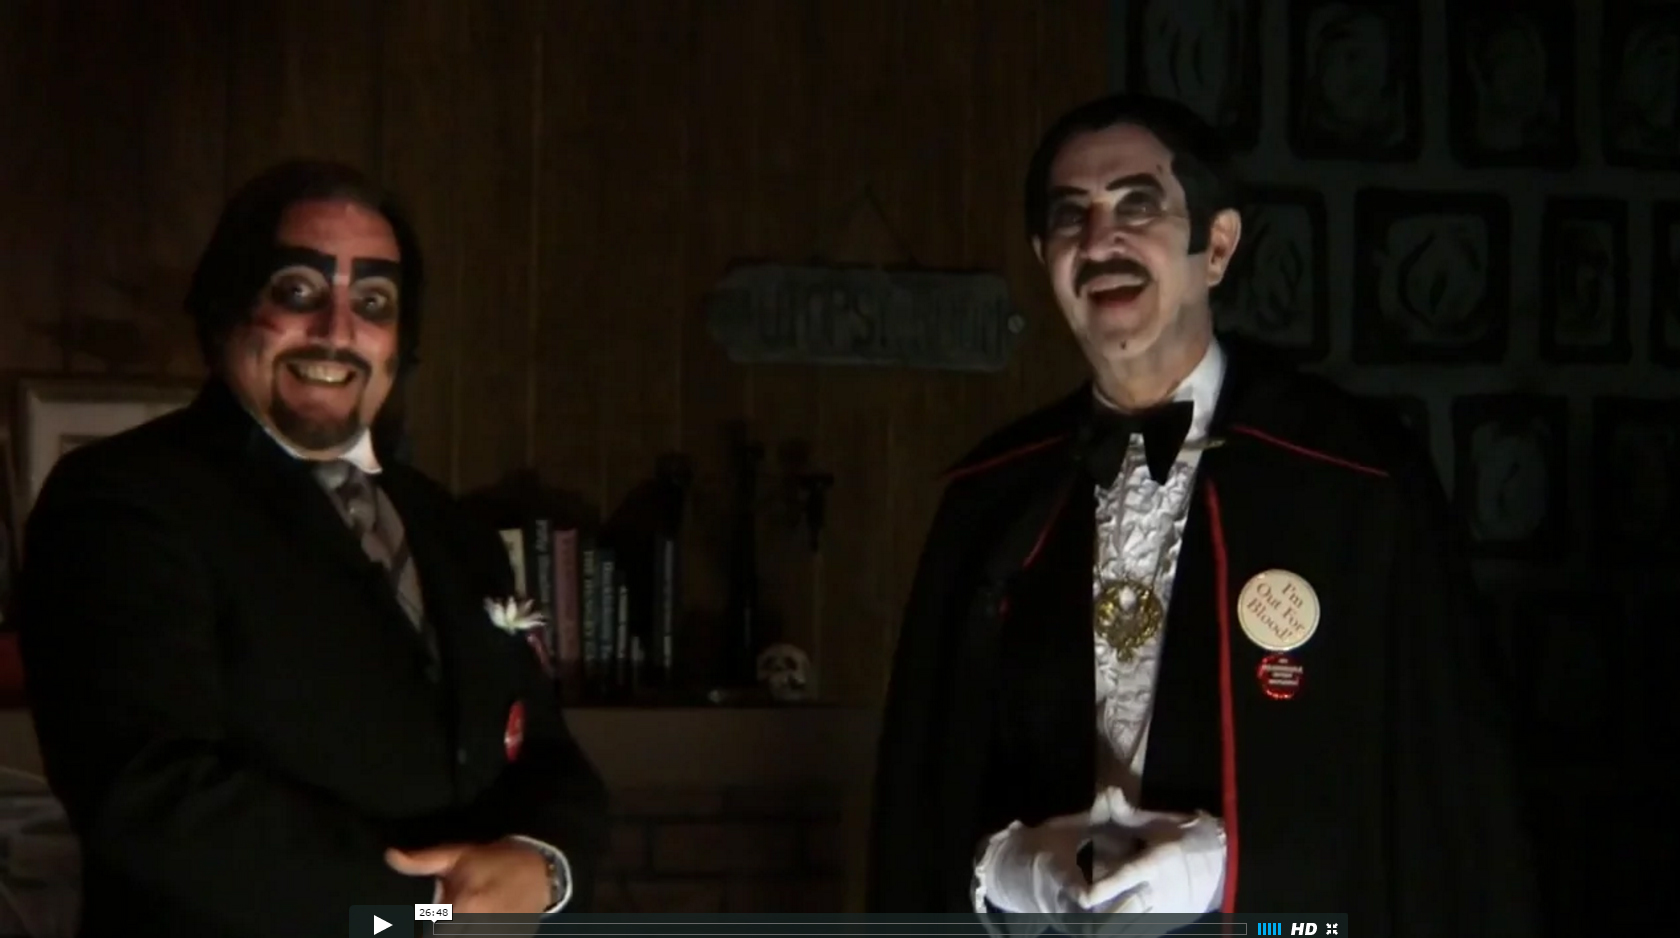 Dr. Paul Bearer with Count Gore De Vol